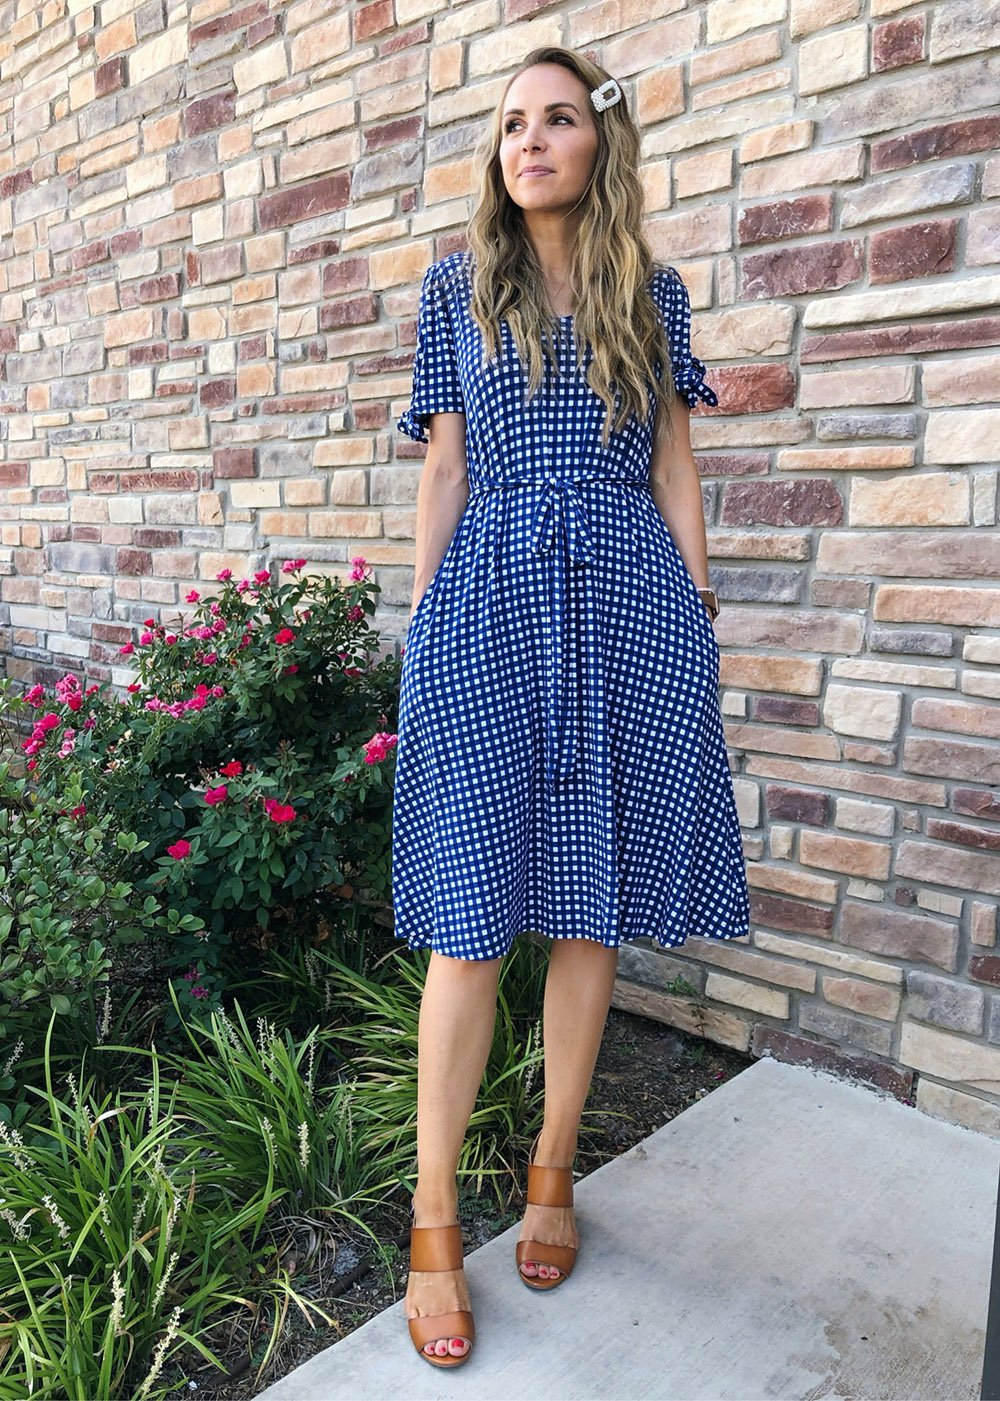 ginham dress and heeled sandals - instagram outfit